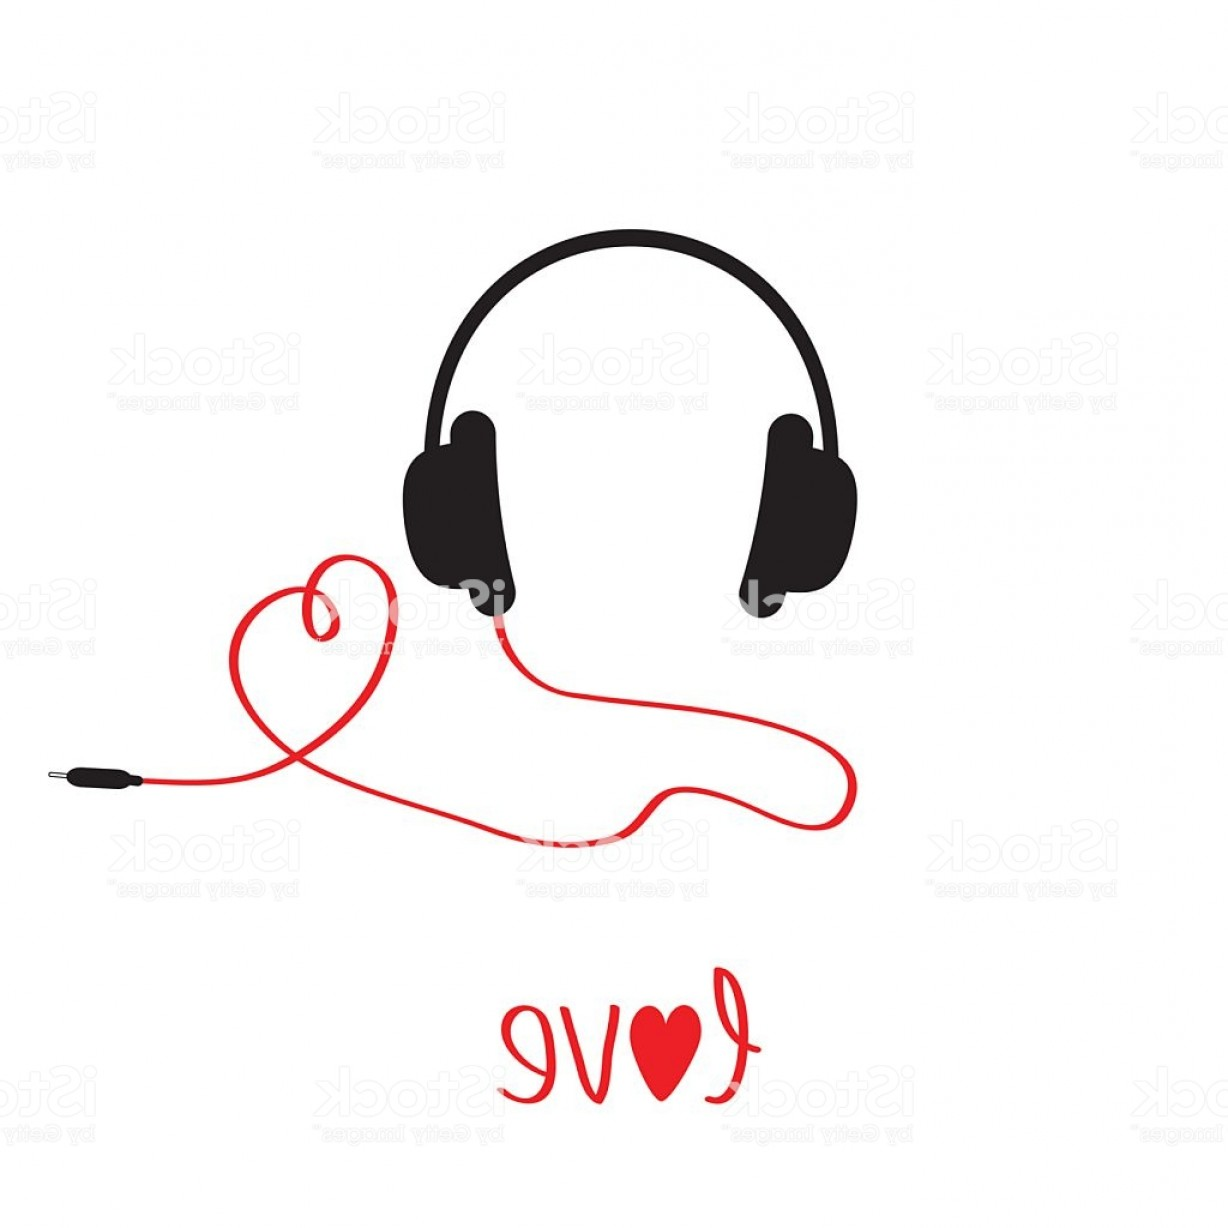 Short Cord Vector: Black And Red Headphones With Cord In Shape Of Heart Gm